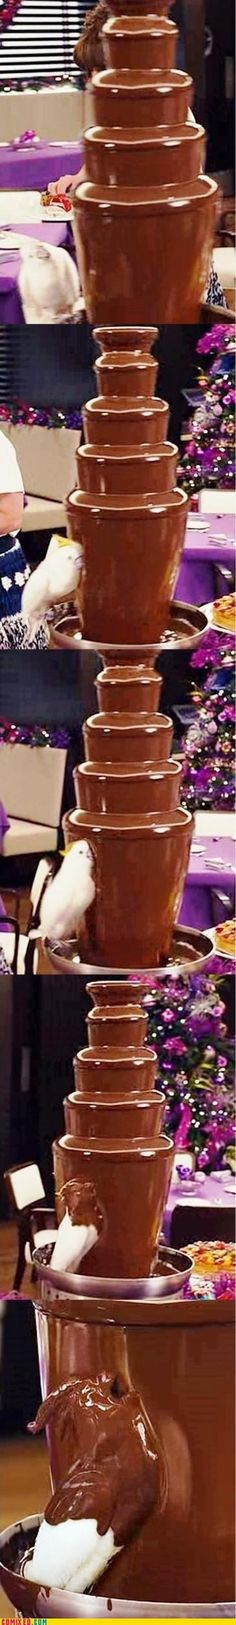 Chocolate covered cockatiel